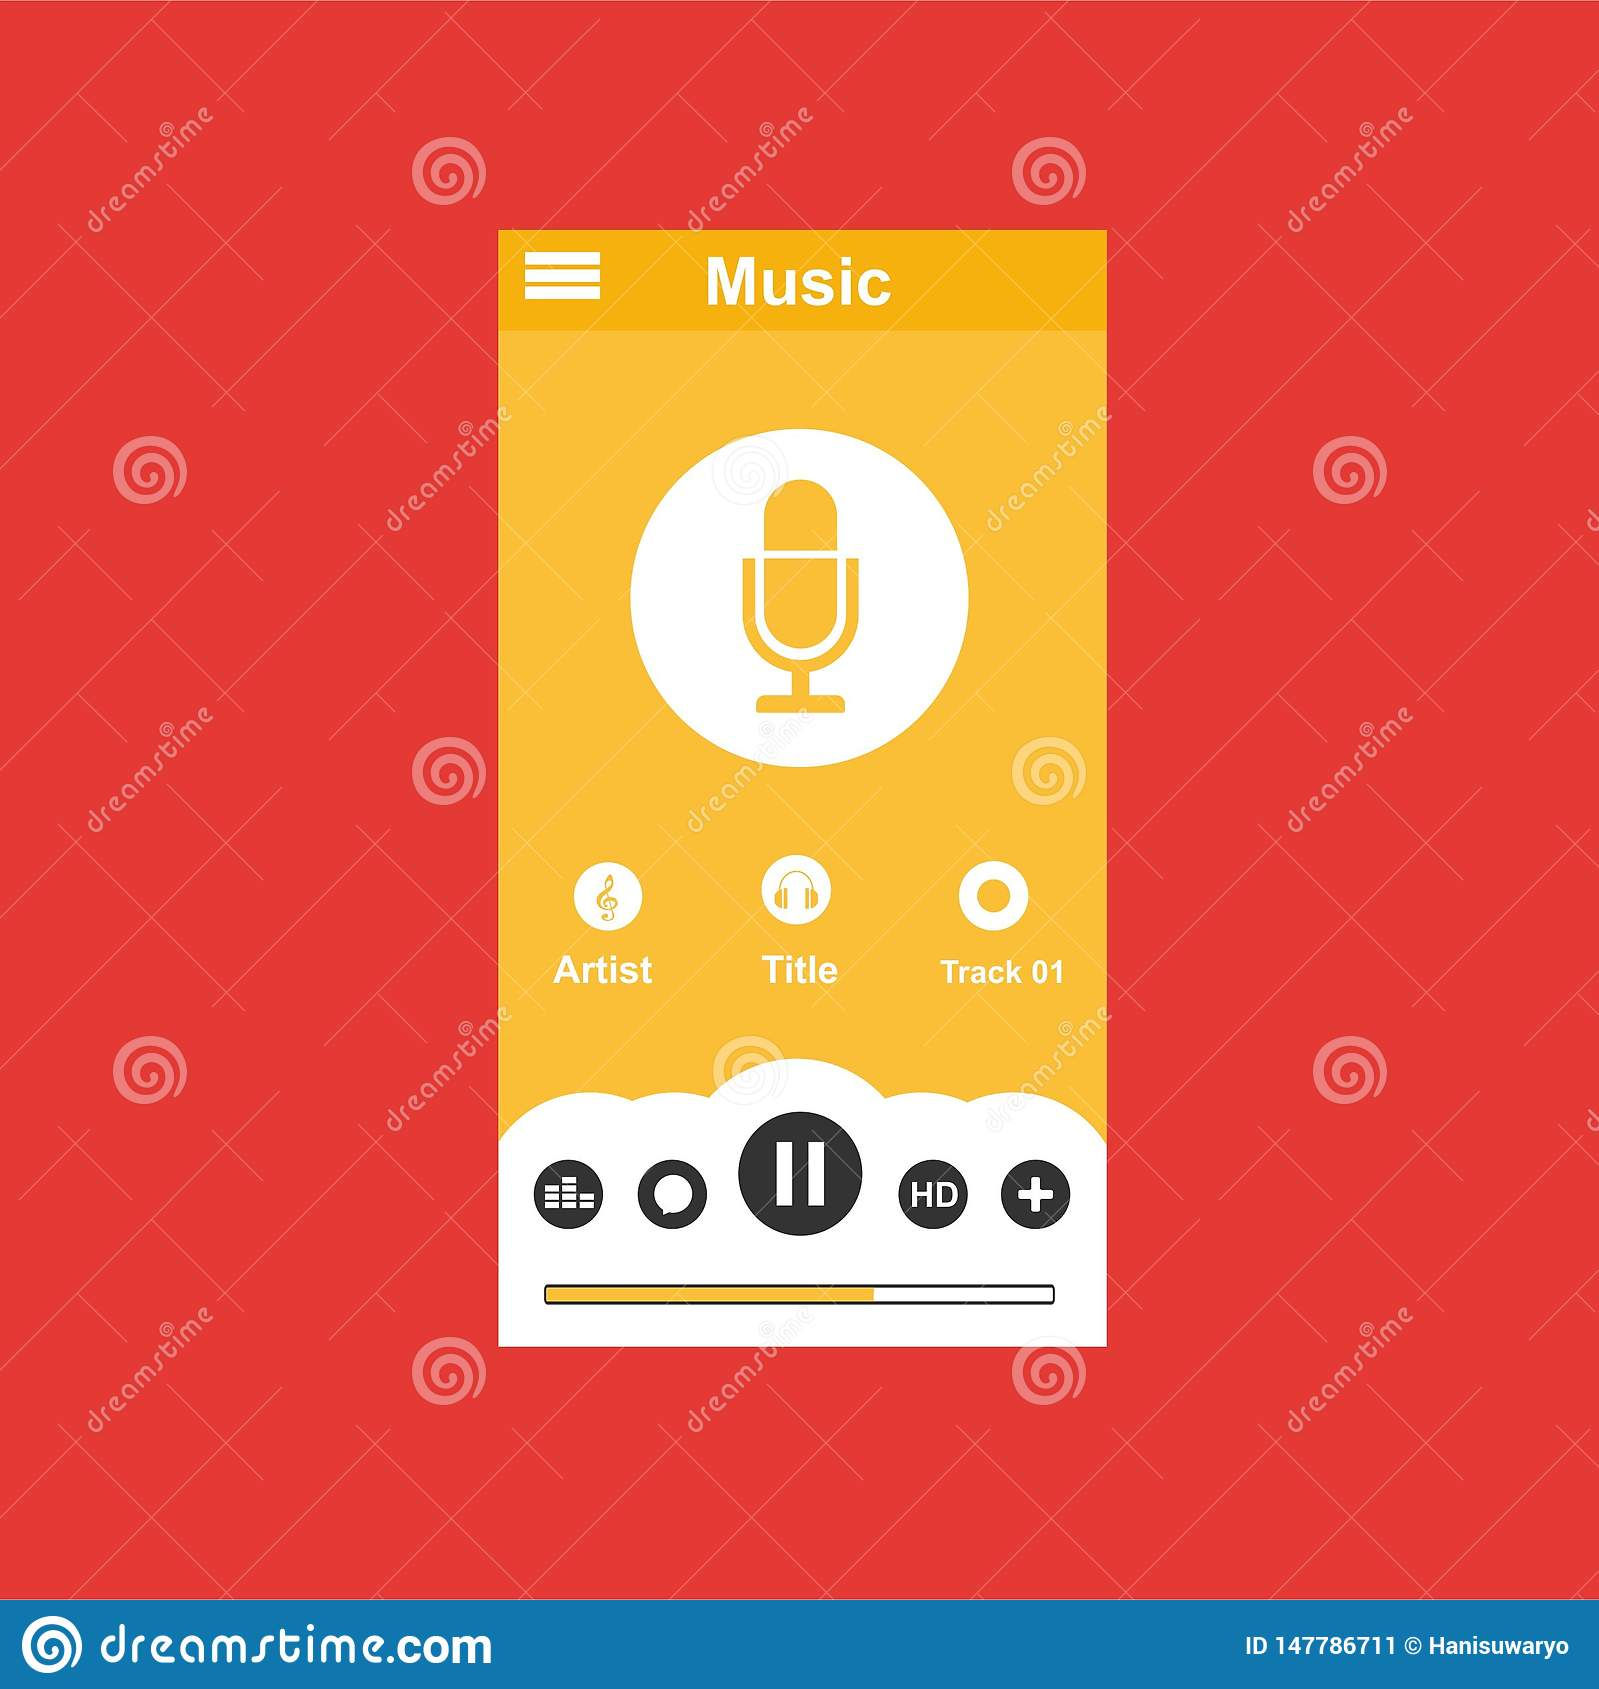 Media player application, app template with flat design style for smartphones, PC or tablets. Clean and modern - Vector